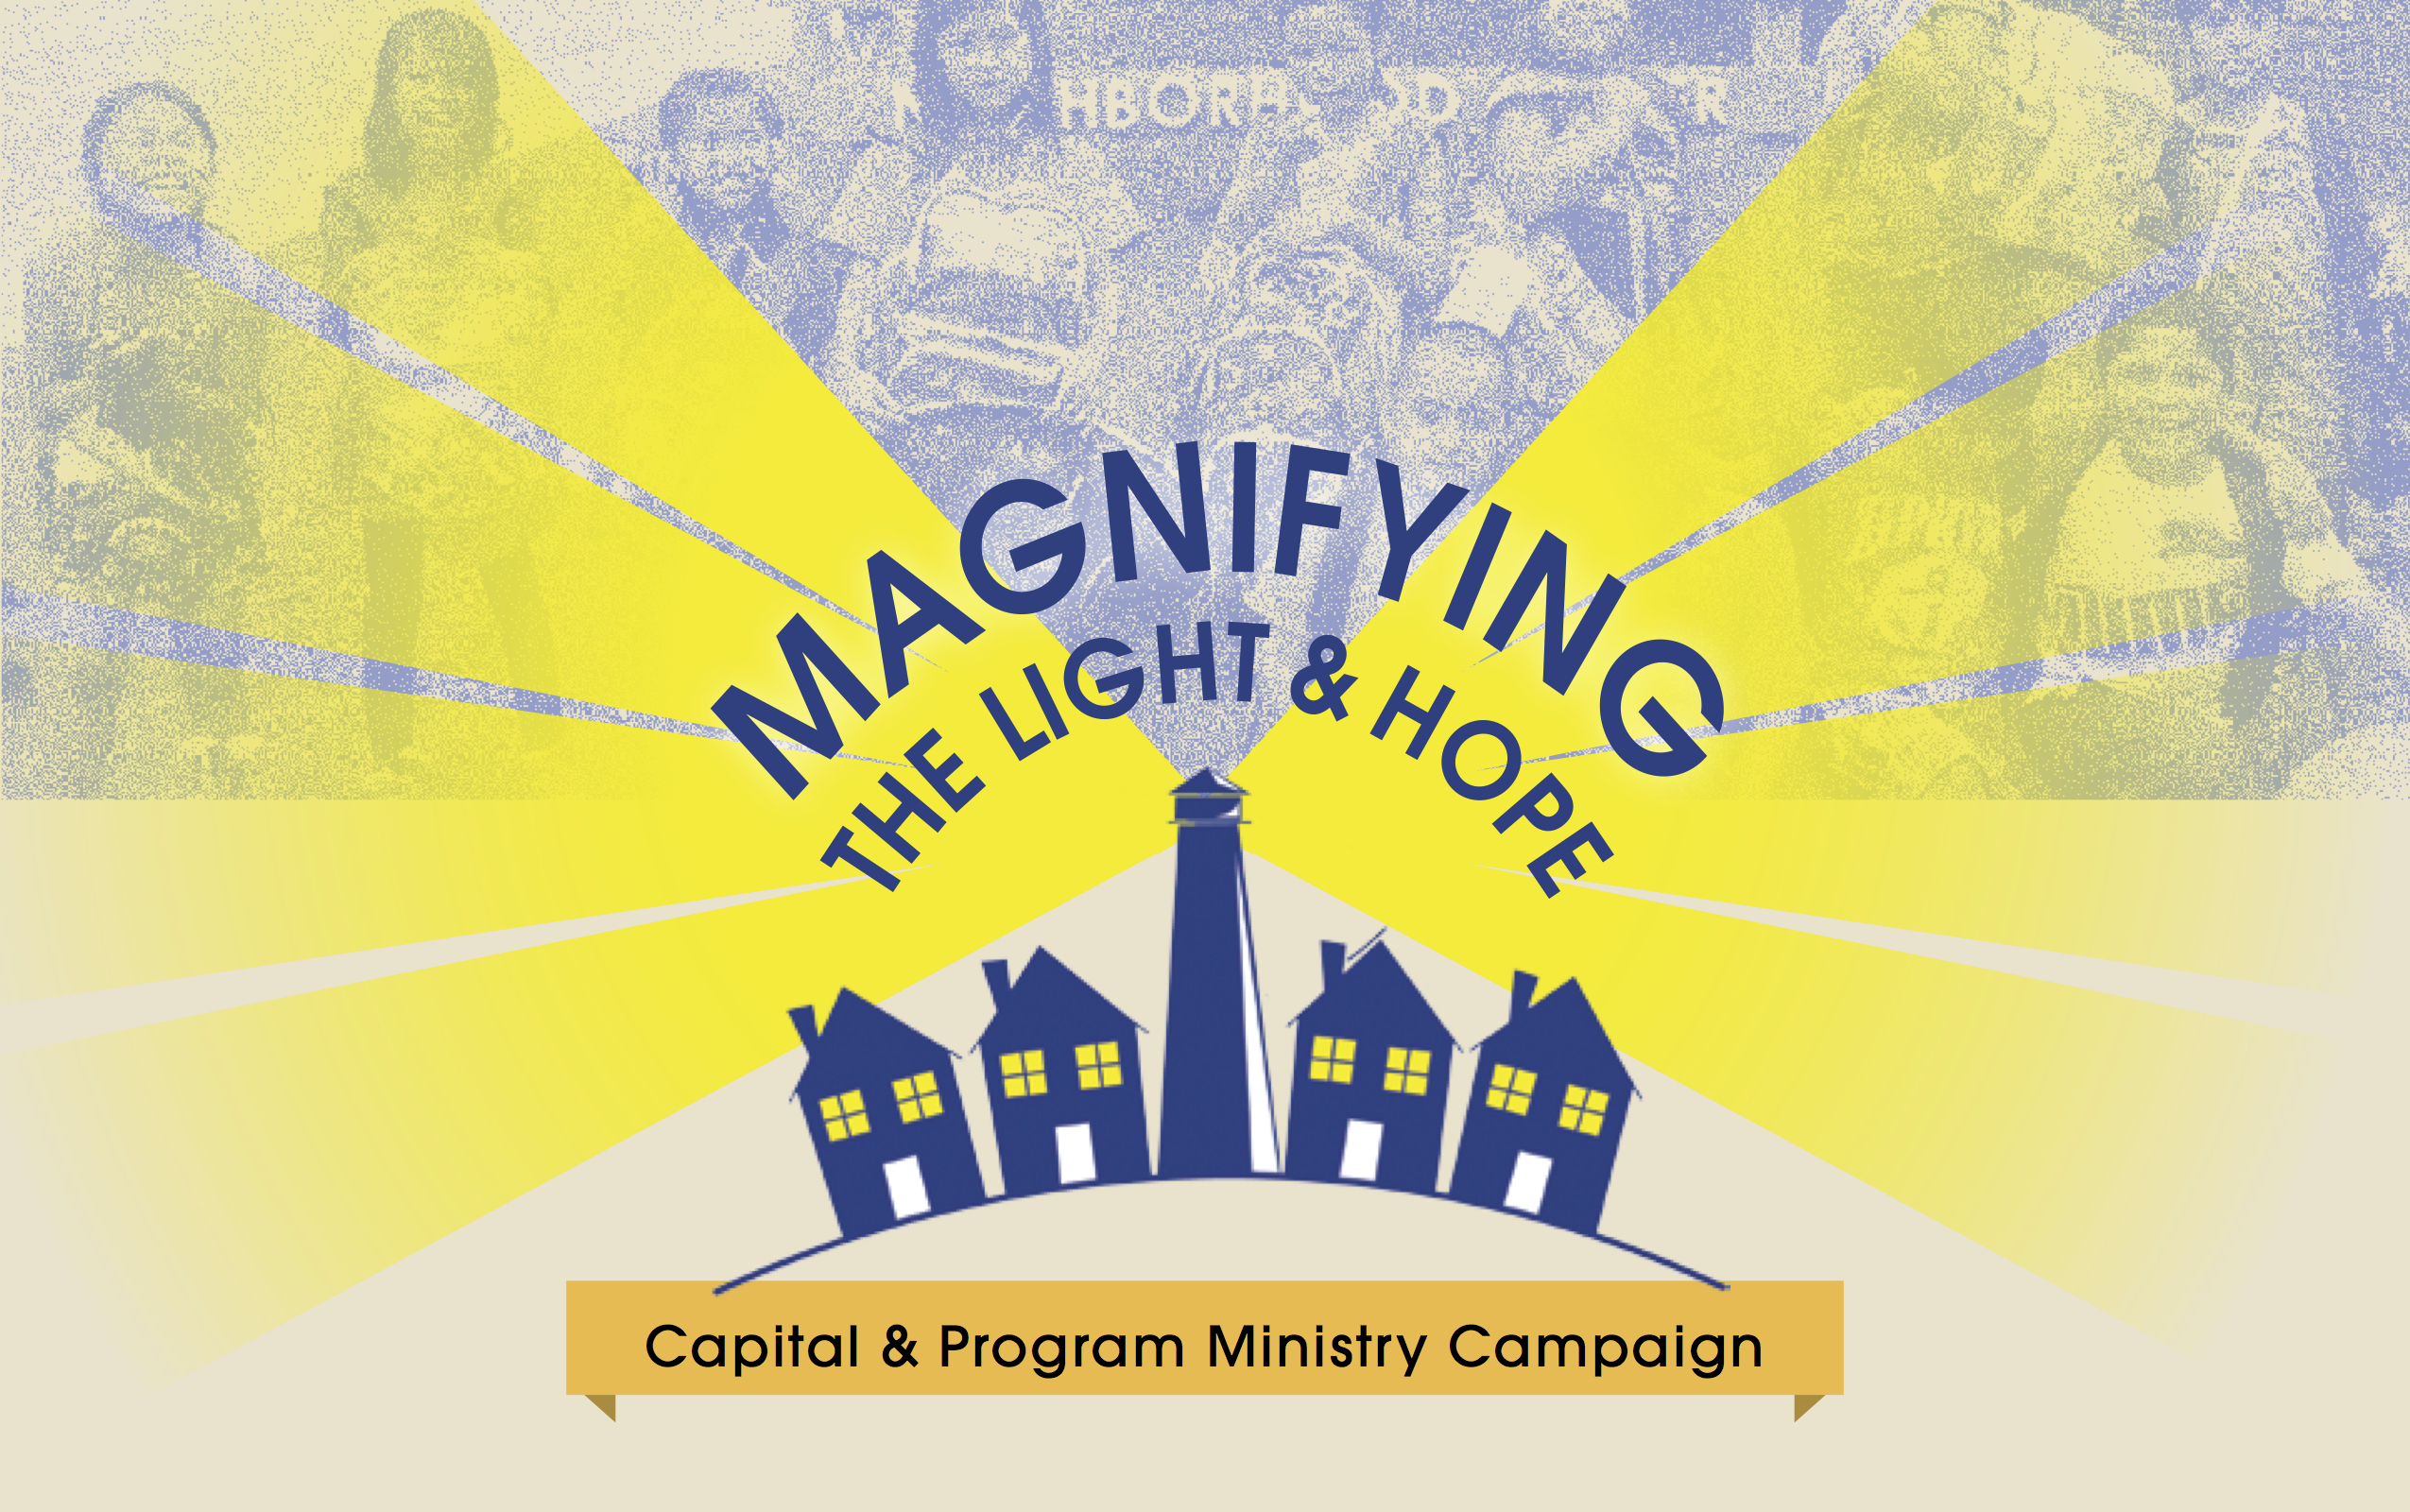 CAPITAL & PROGRAM MINISTRY CAMPAIGN